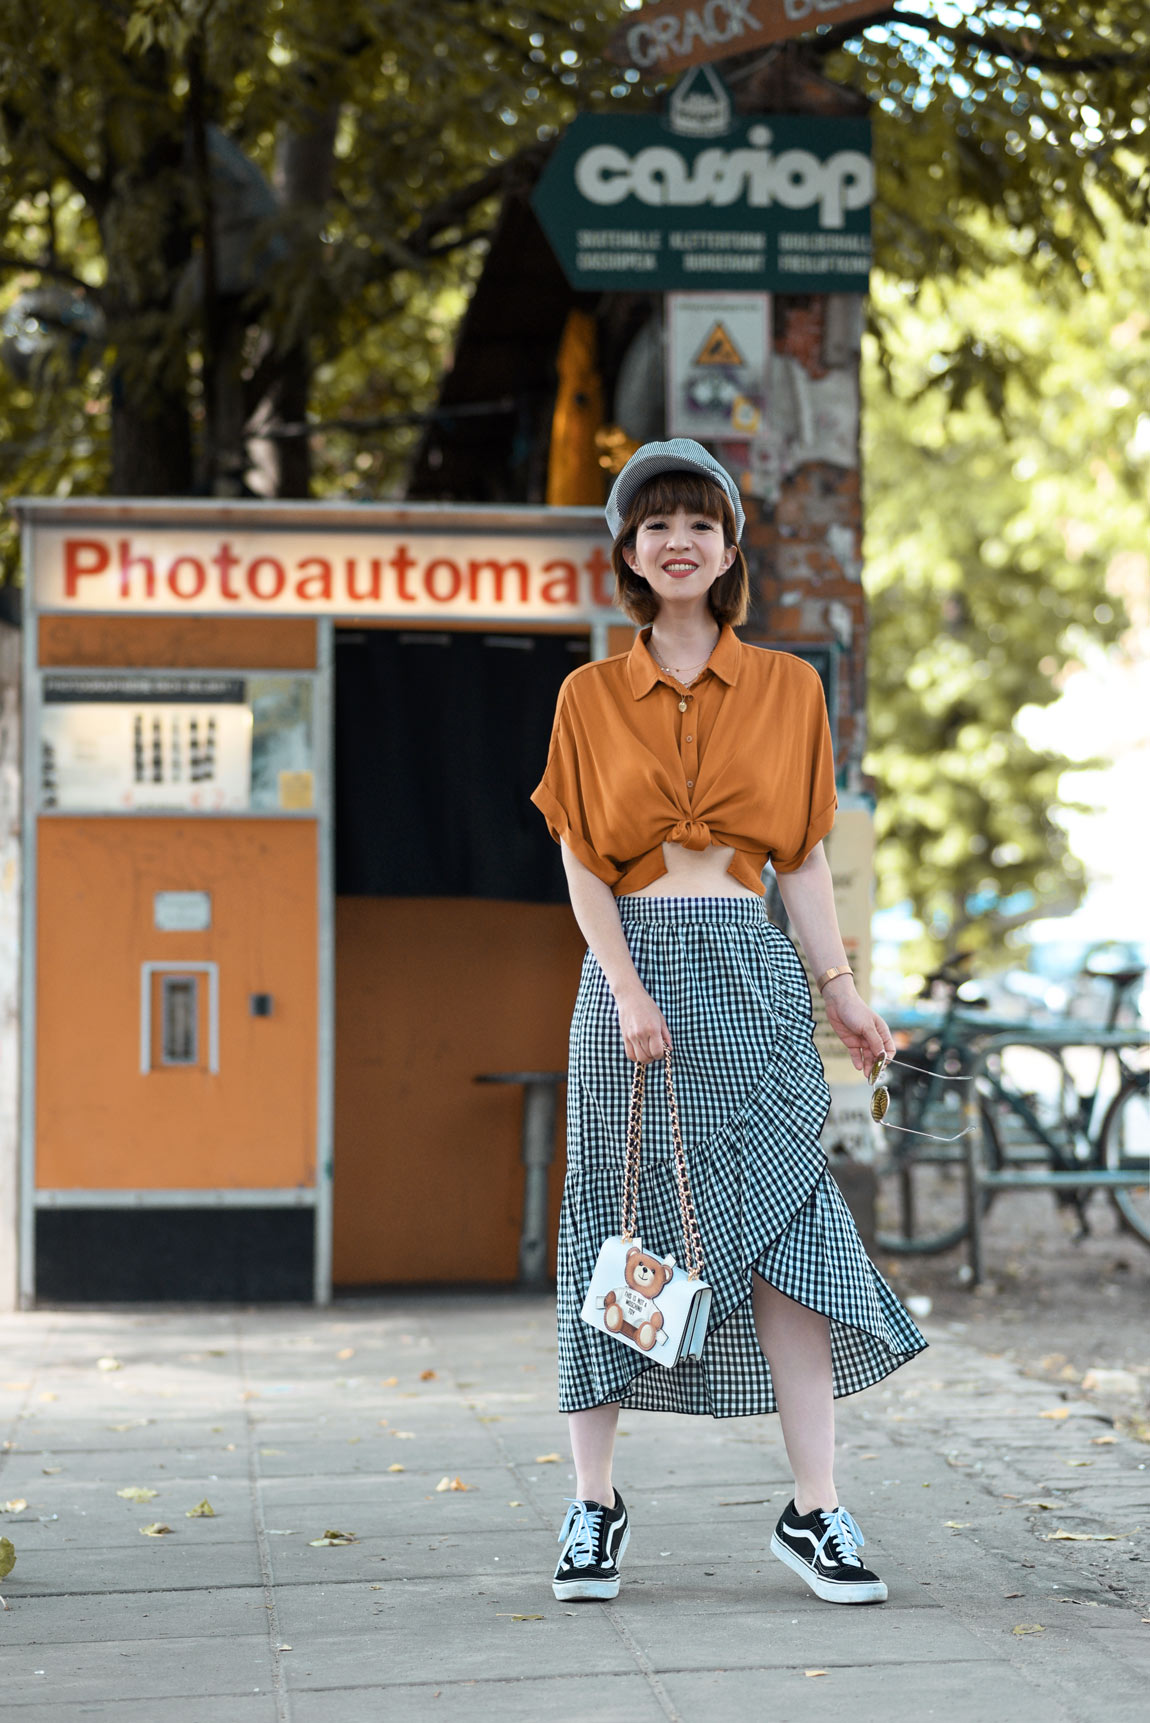 orange, karo, photoautomat, berlin, fashionblog, modeblogger, herbst, inspiration, ootd, outfit, rock, midi